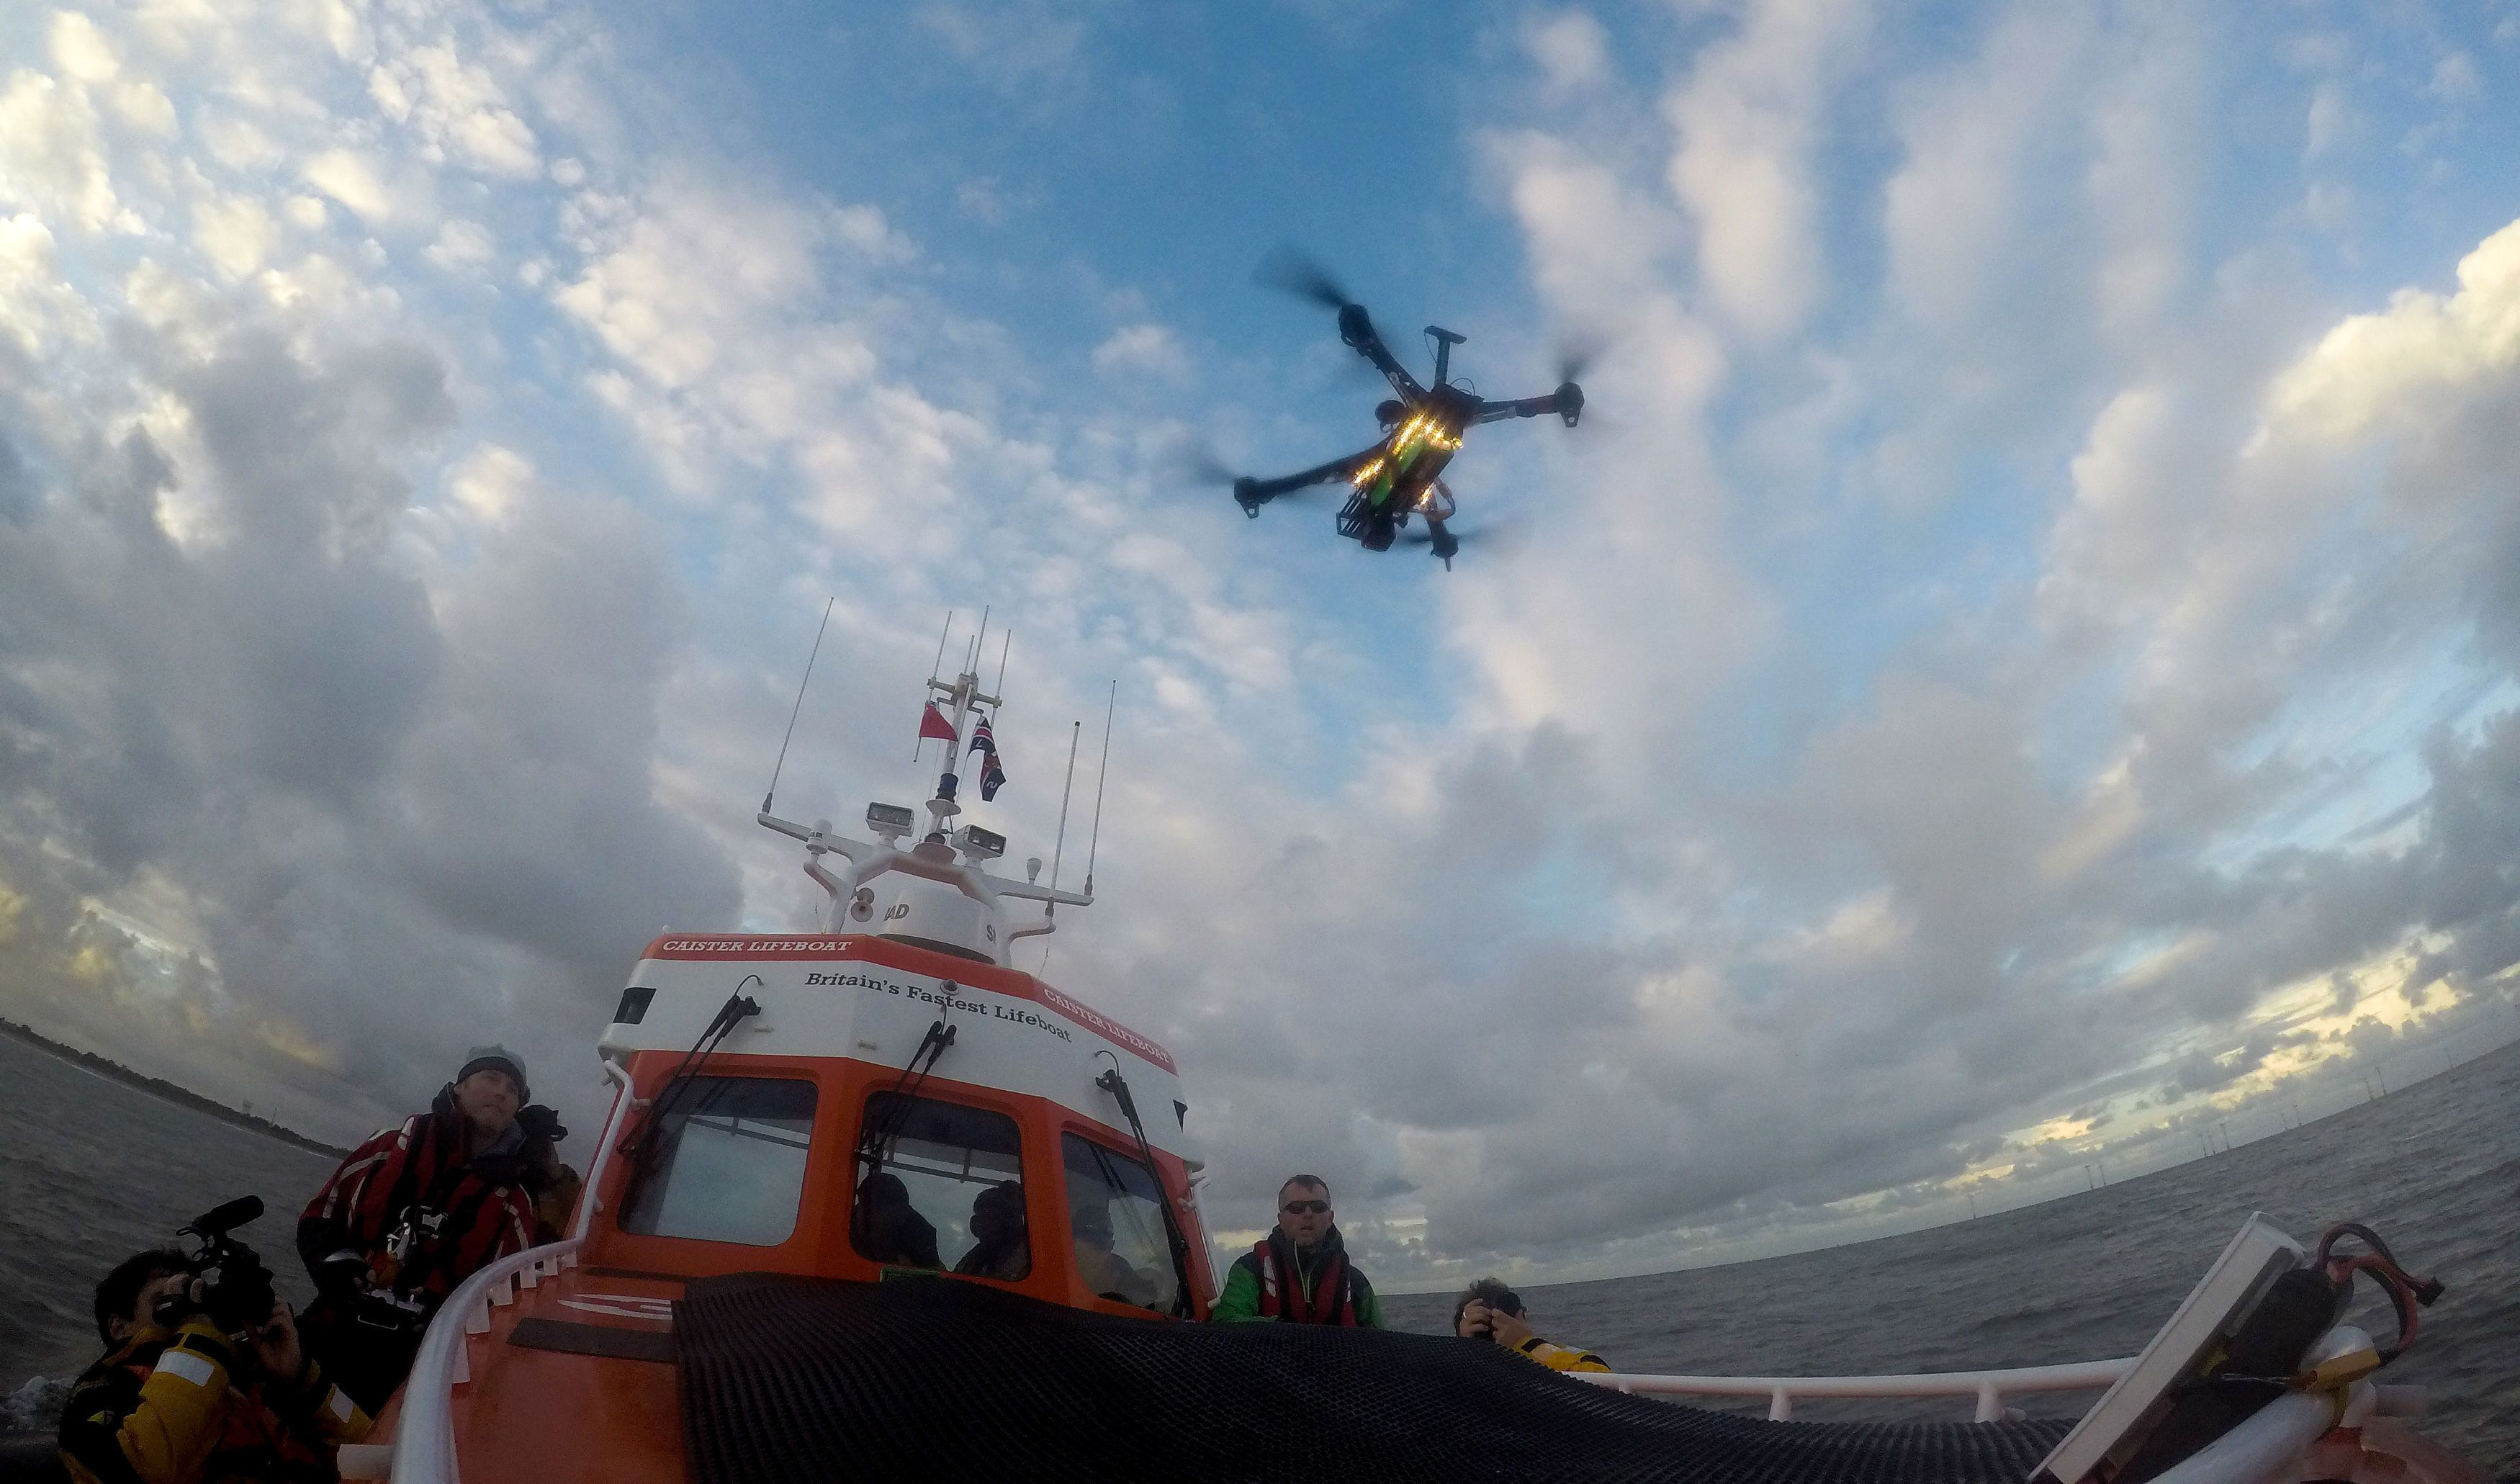 A UK Lifeboat Crew Have Started Using Drones For Search And